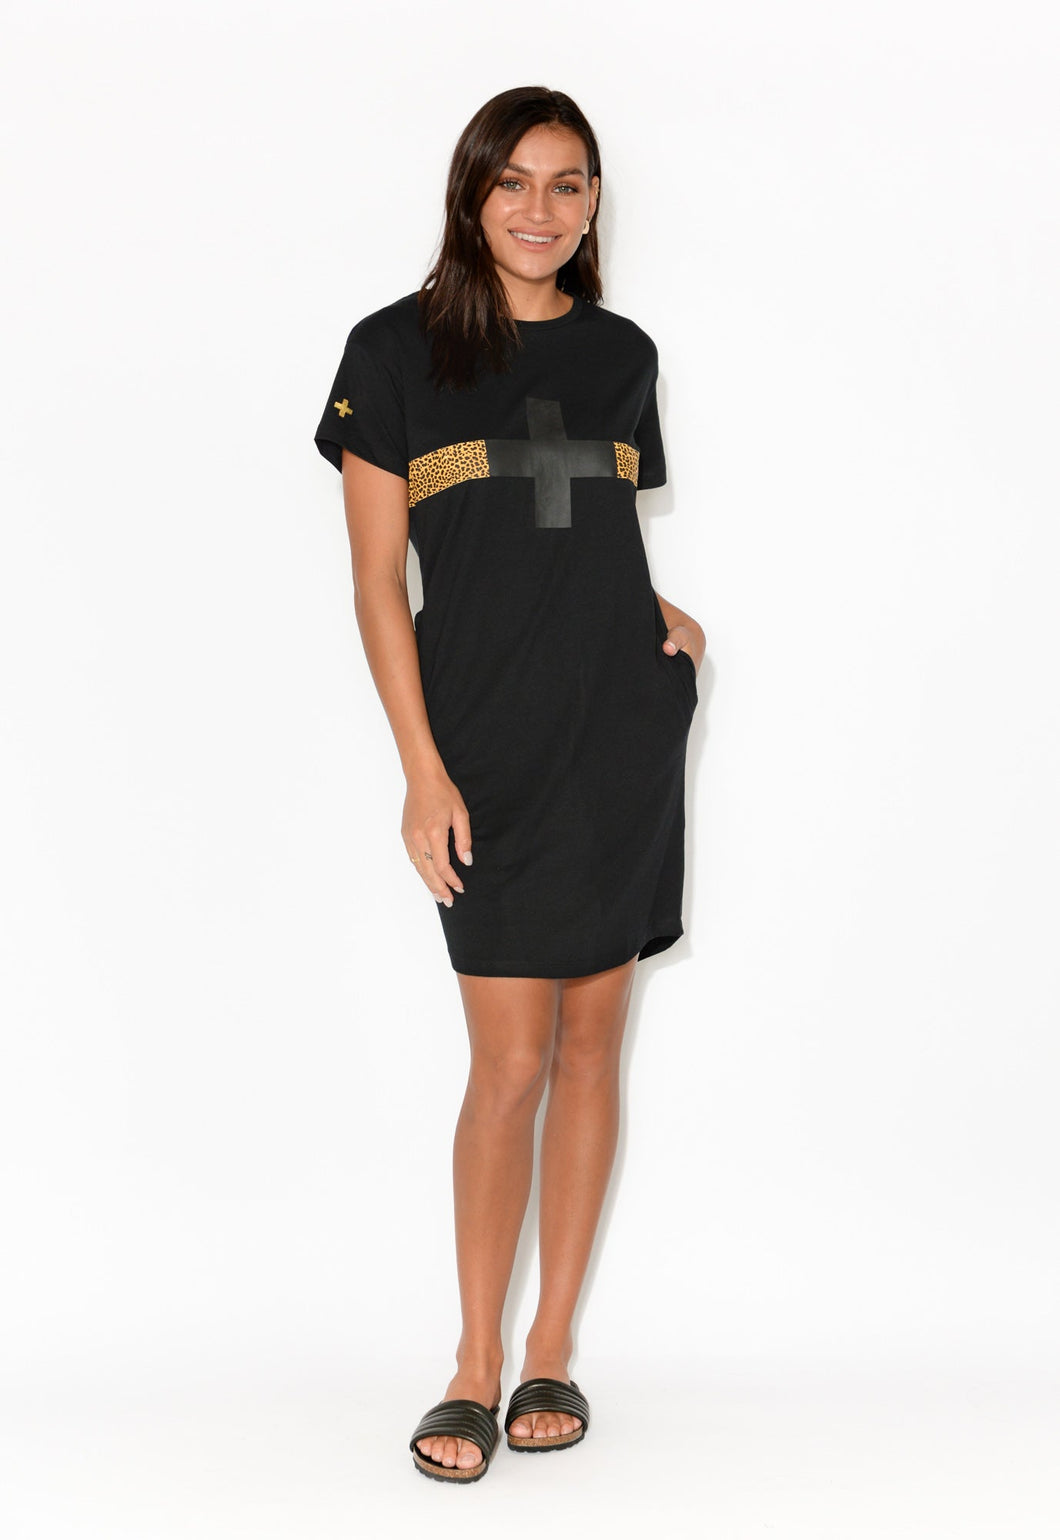 Black Cheetah Pocket Tee Dress